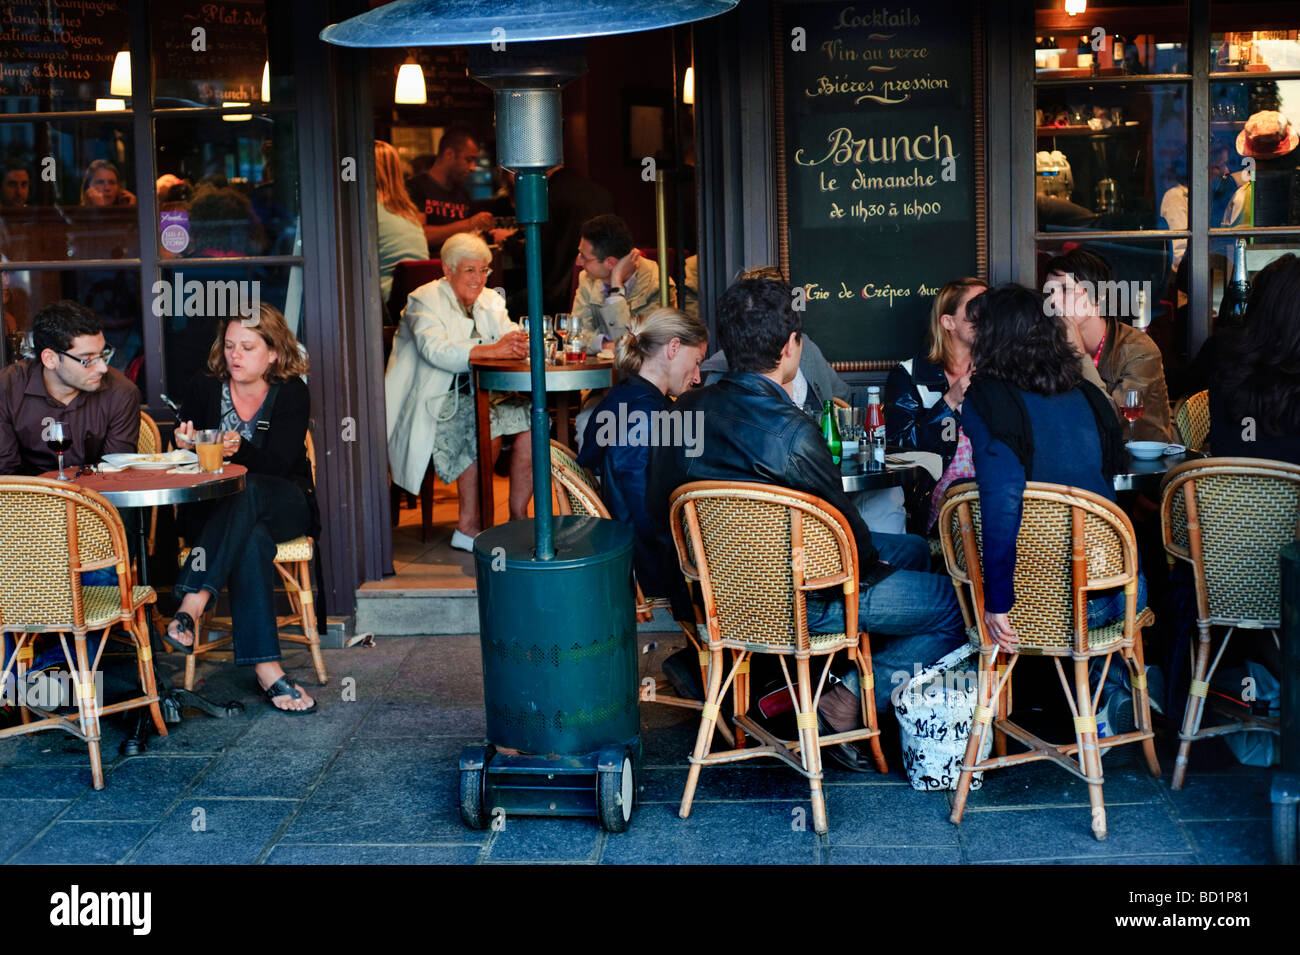 Crowded restaurant table - Paris France People On French Caf Bistro Restaurant Crowded Sidewalk Terrace In Front